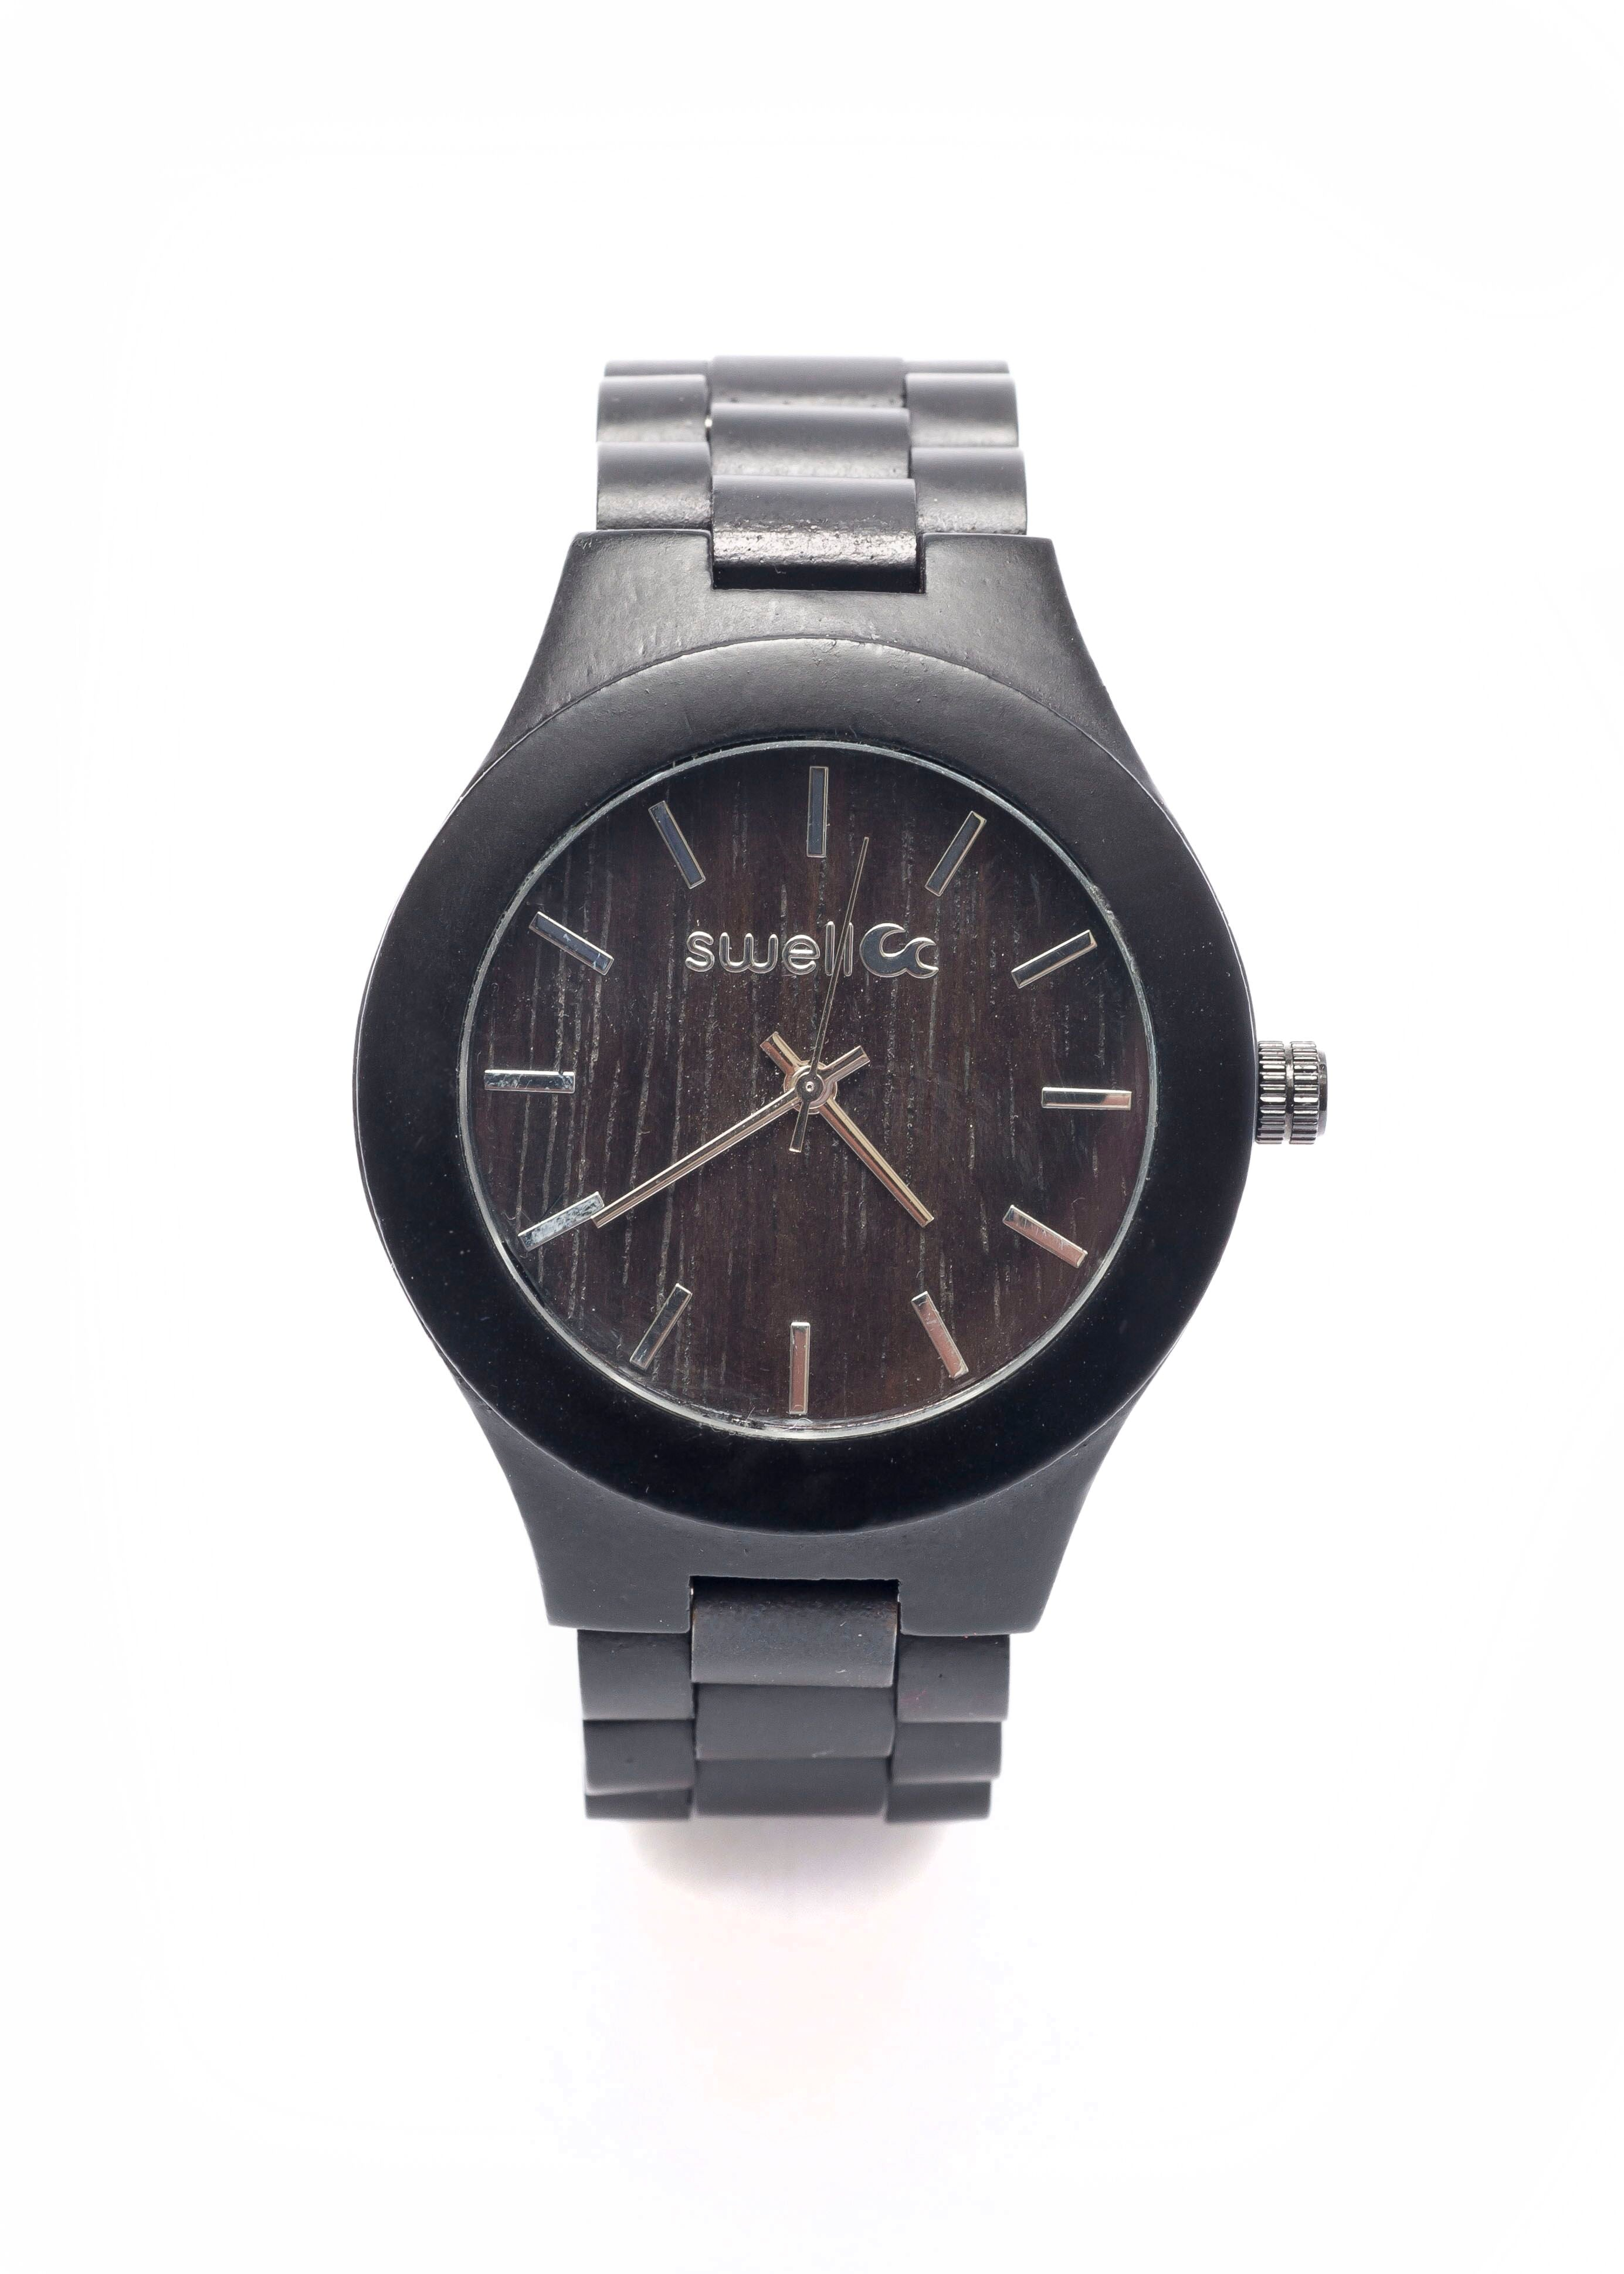 The Classic Onyx Bamboo Watch - 42mm